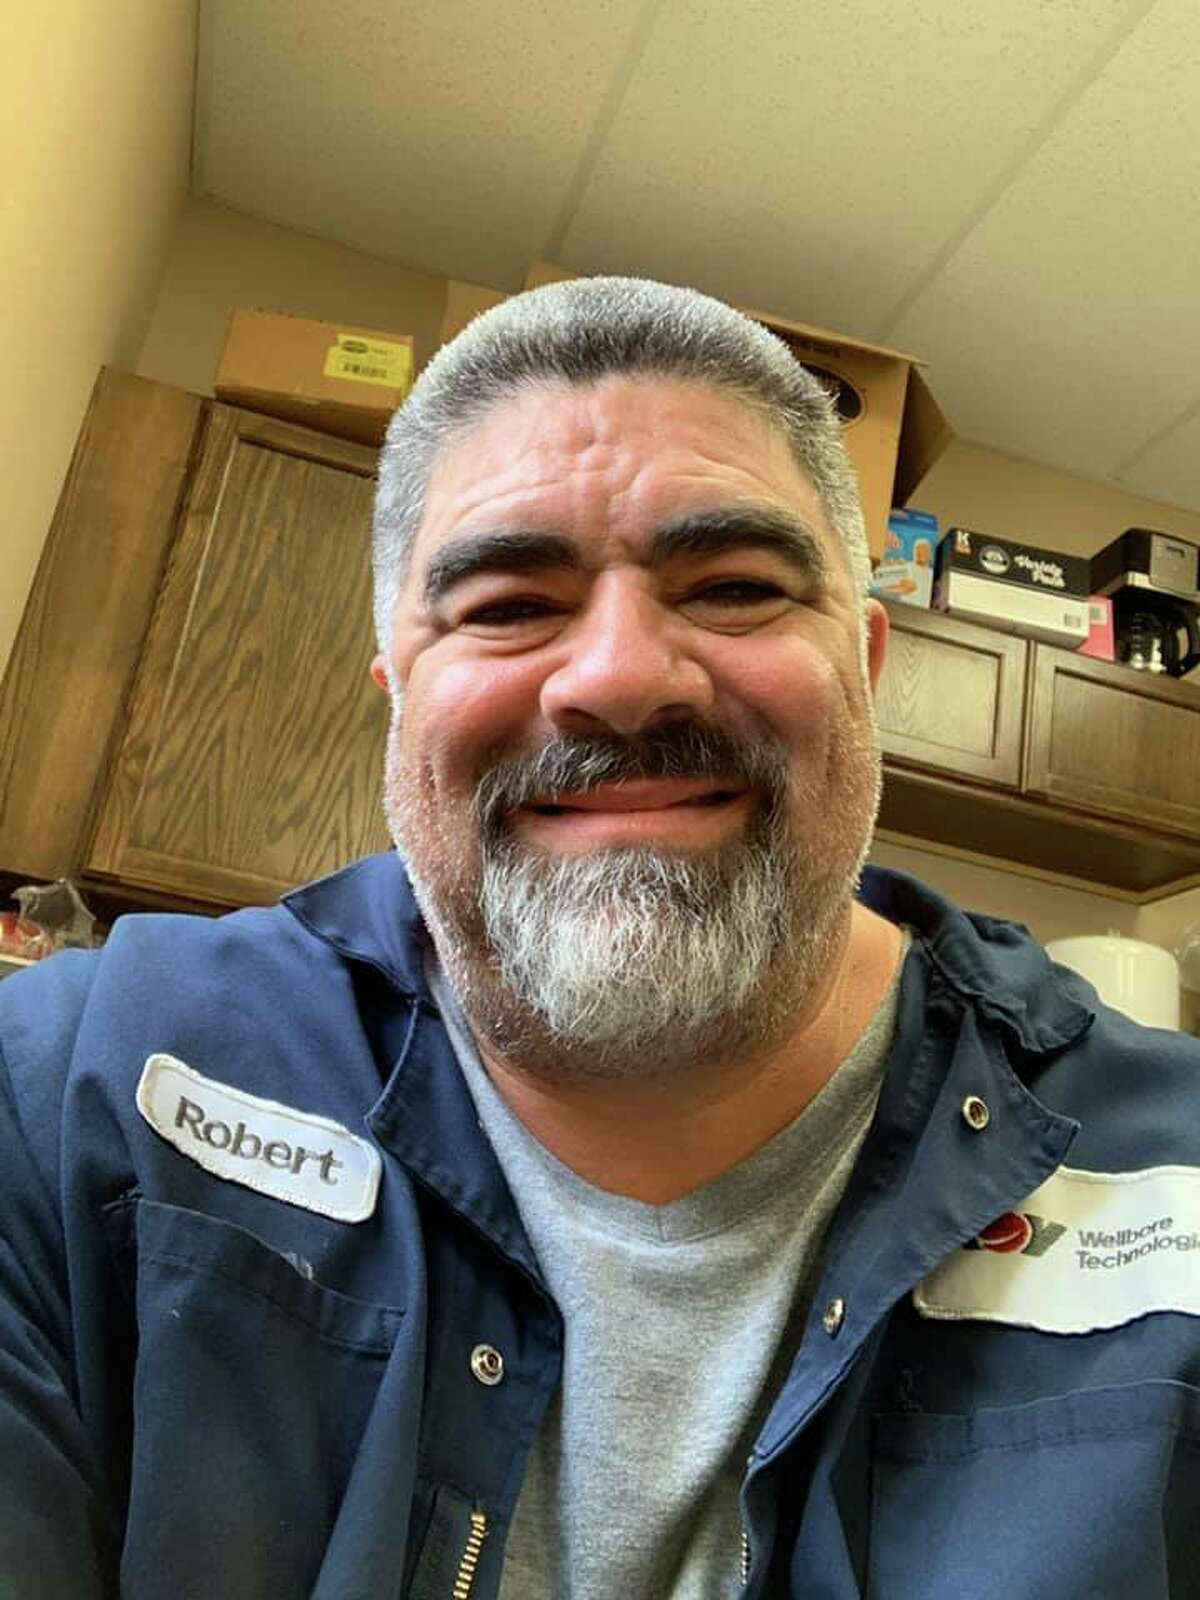 As Houstonians continue sheltering in place, many have turned to coronacuts as an option for their growing hair issues. Here is the after shot of a quarantine haircut done courtesy of Robert Fonseca's son Chris Fonseca.